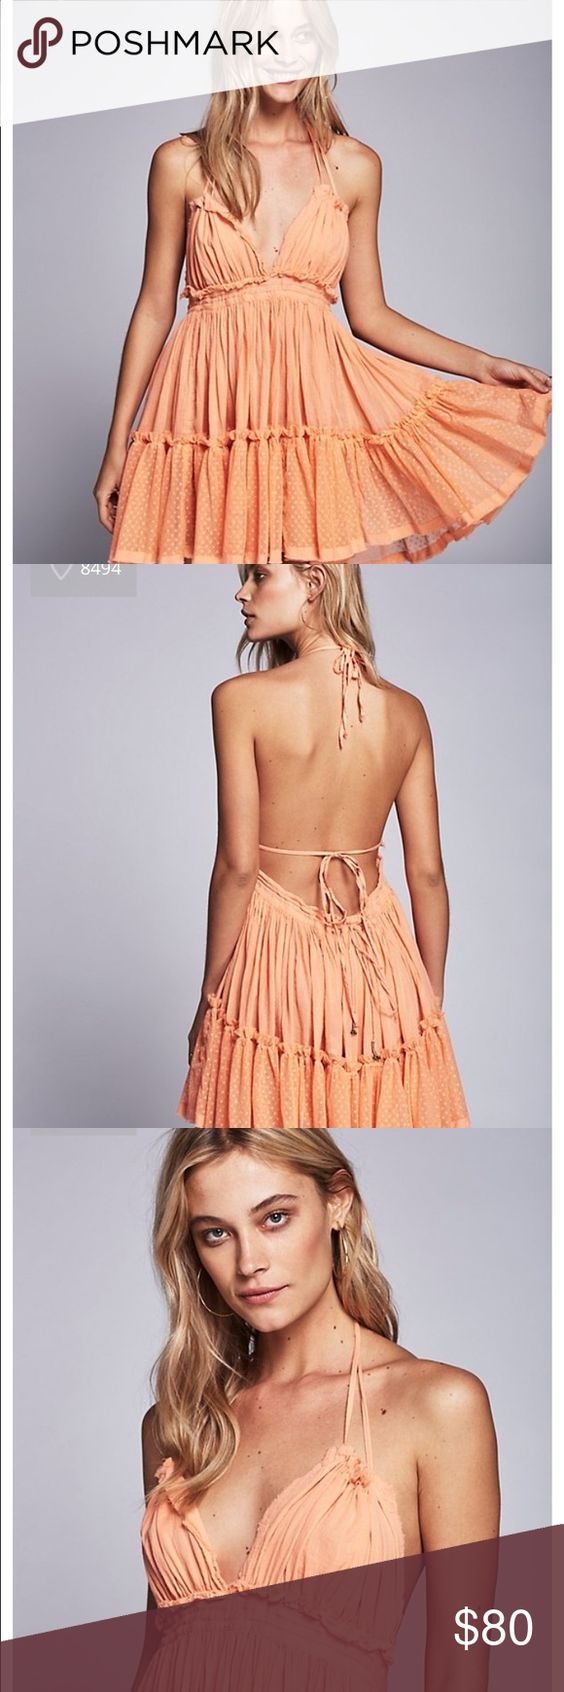 Free People Rare 100 Degrees Dress Peach Small This is the rare, sold-out small peach 100 Degrees dress from Free People! It is $85 with shipping on their site. Free People Dresses Mini